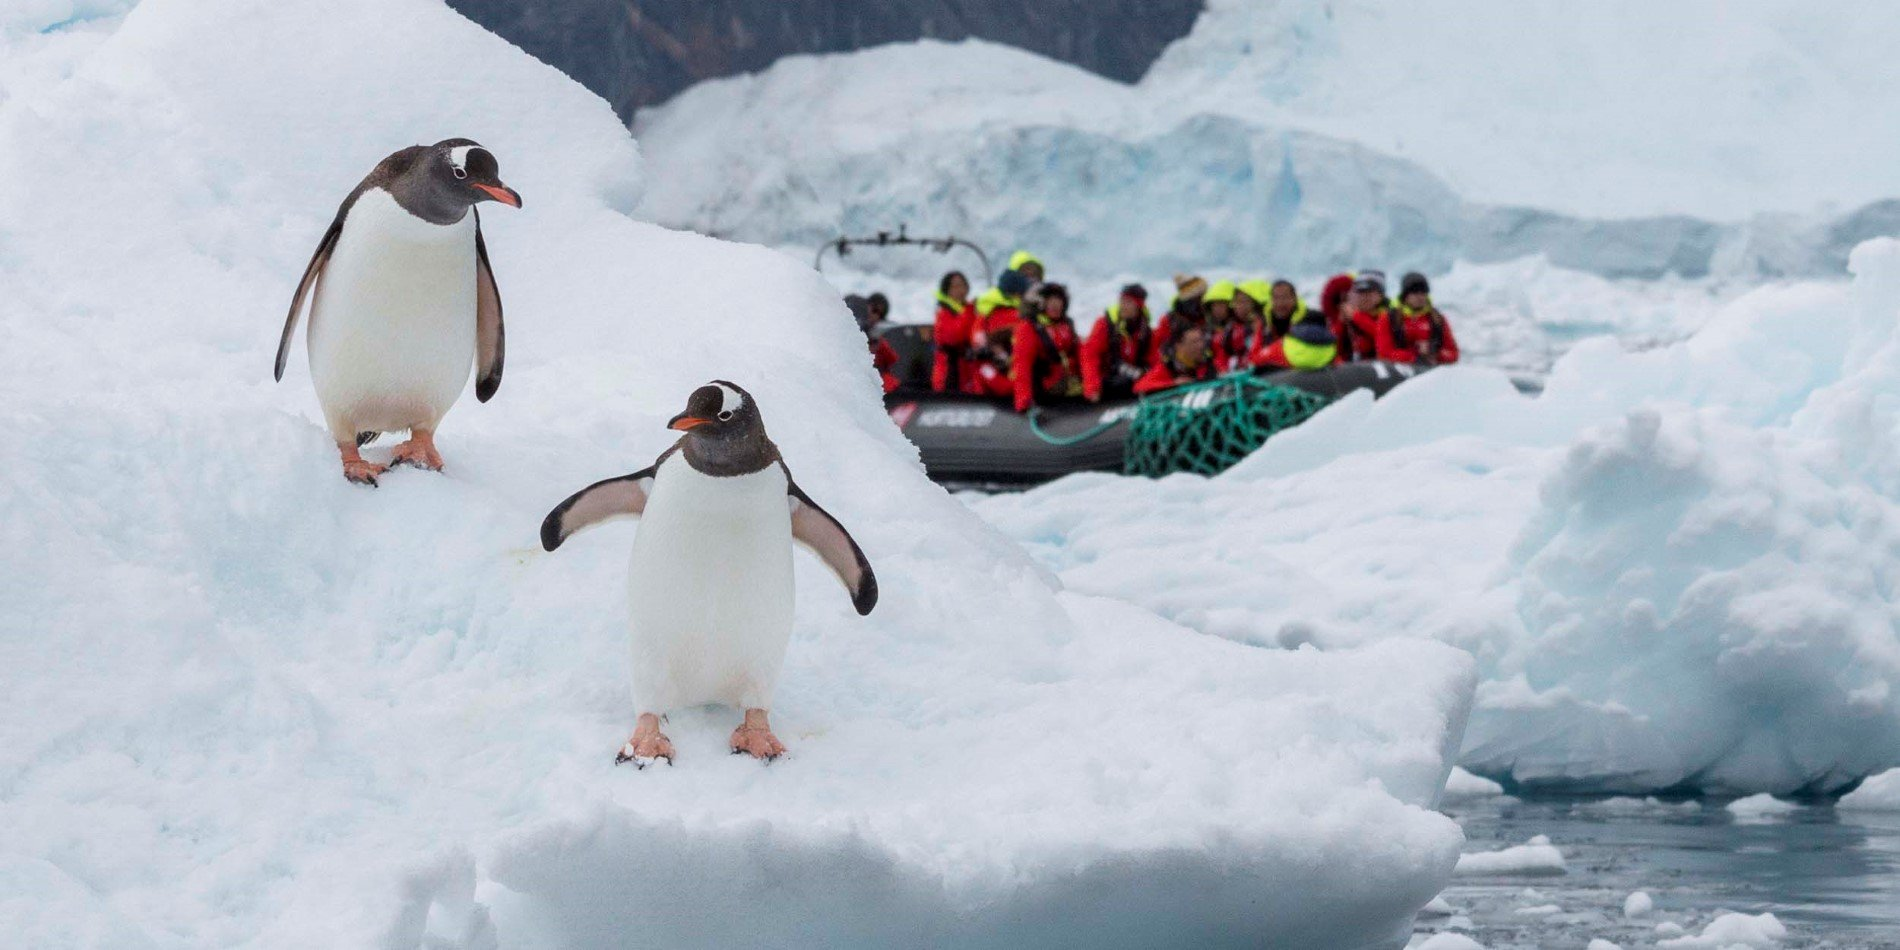 Excursion to meet penguins in Neko Harbour.